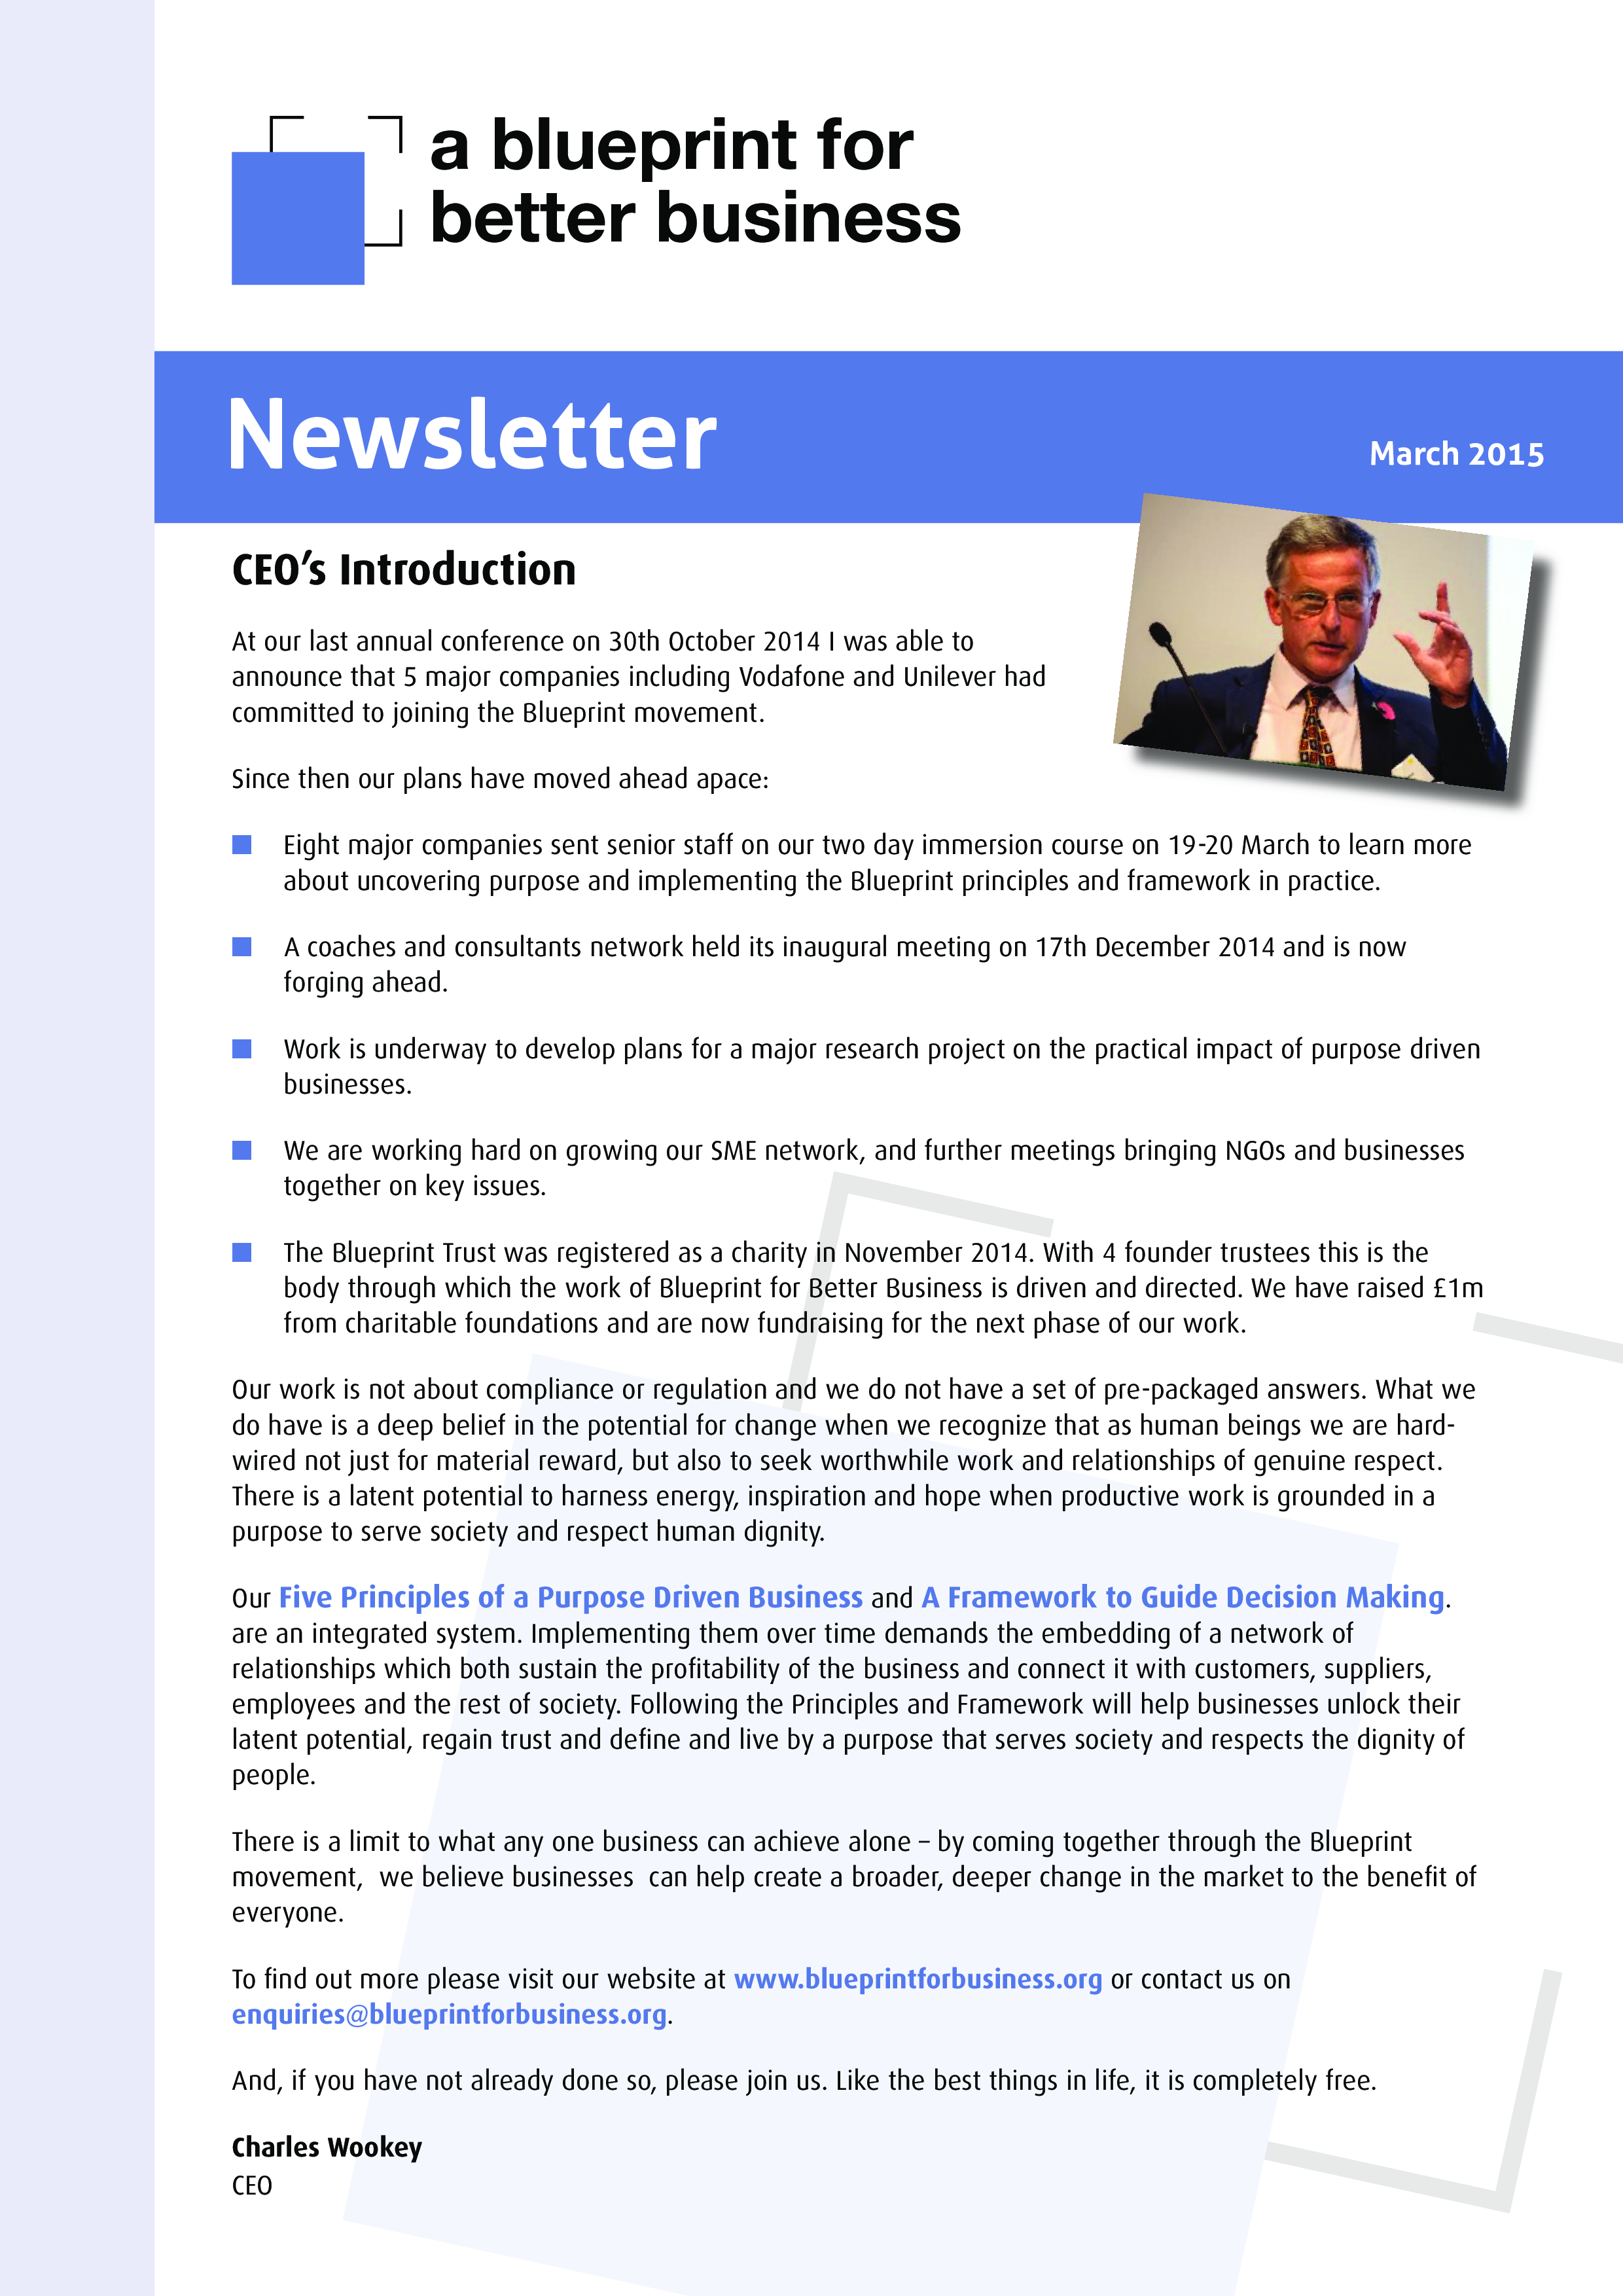 Free business newsletter example templates at allbusinesstemplates business newsletter example main image malvernweather Images